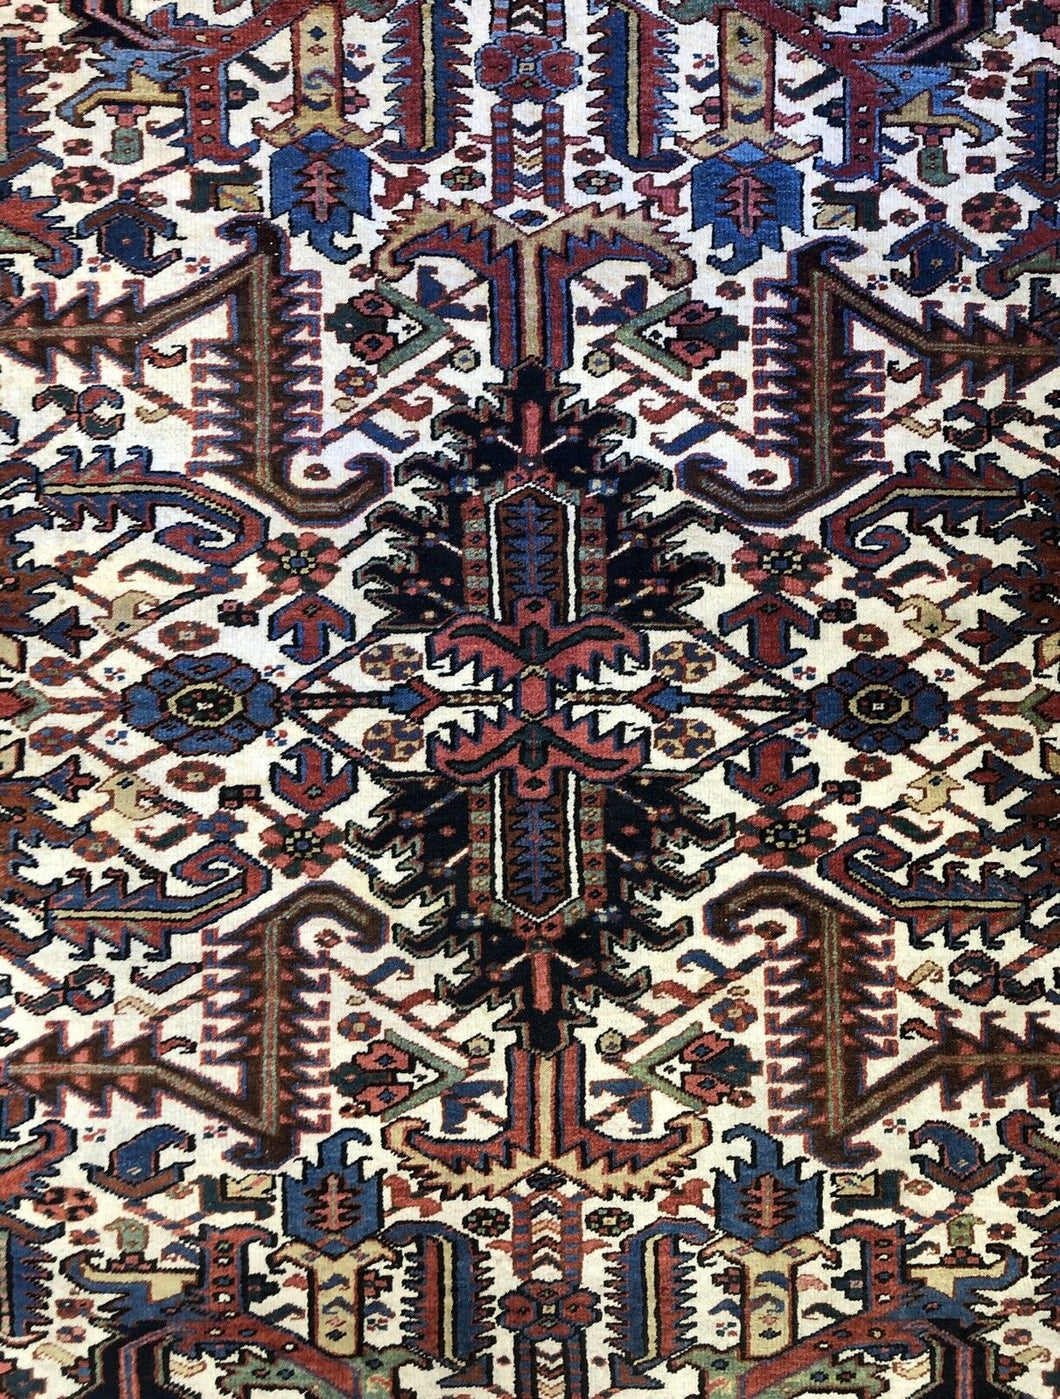 Handsome Heriz - 1920s Antique Persian Rug - Tribal Carpet - 7'5